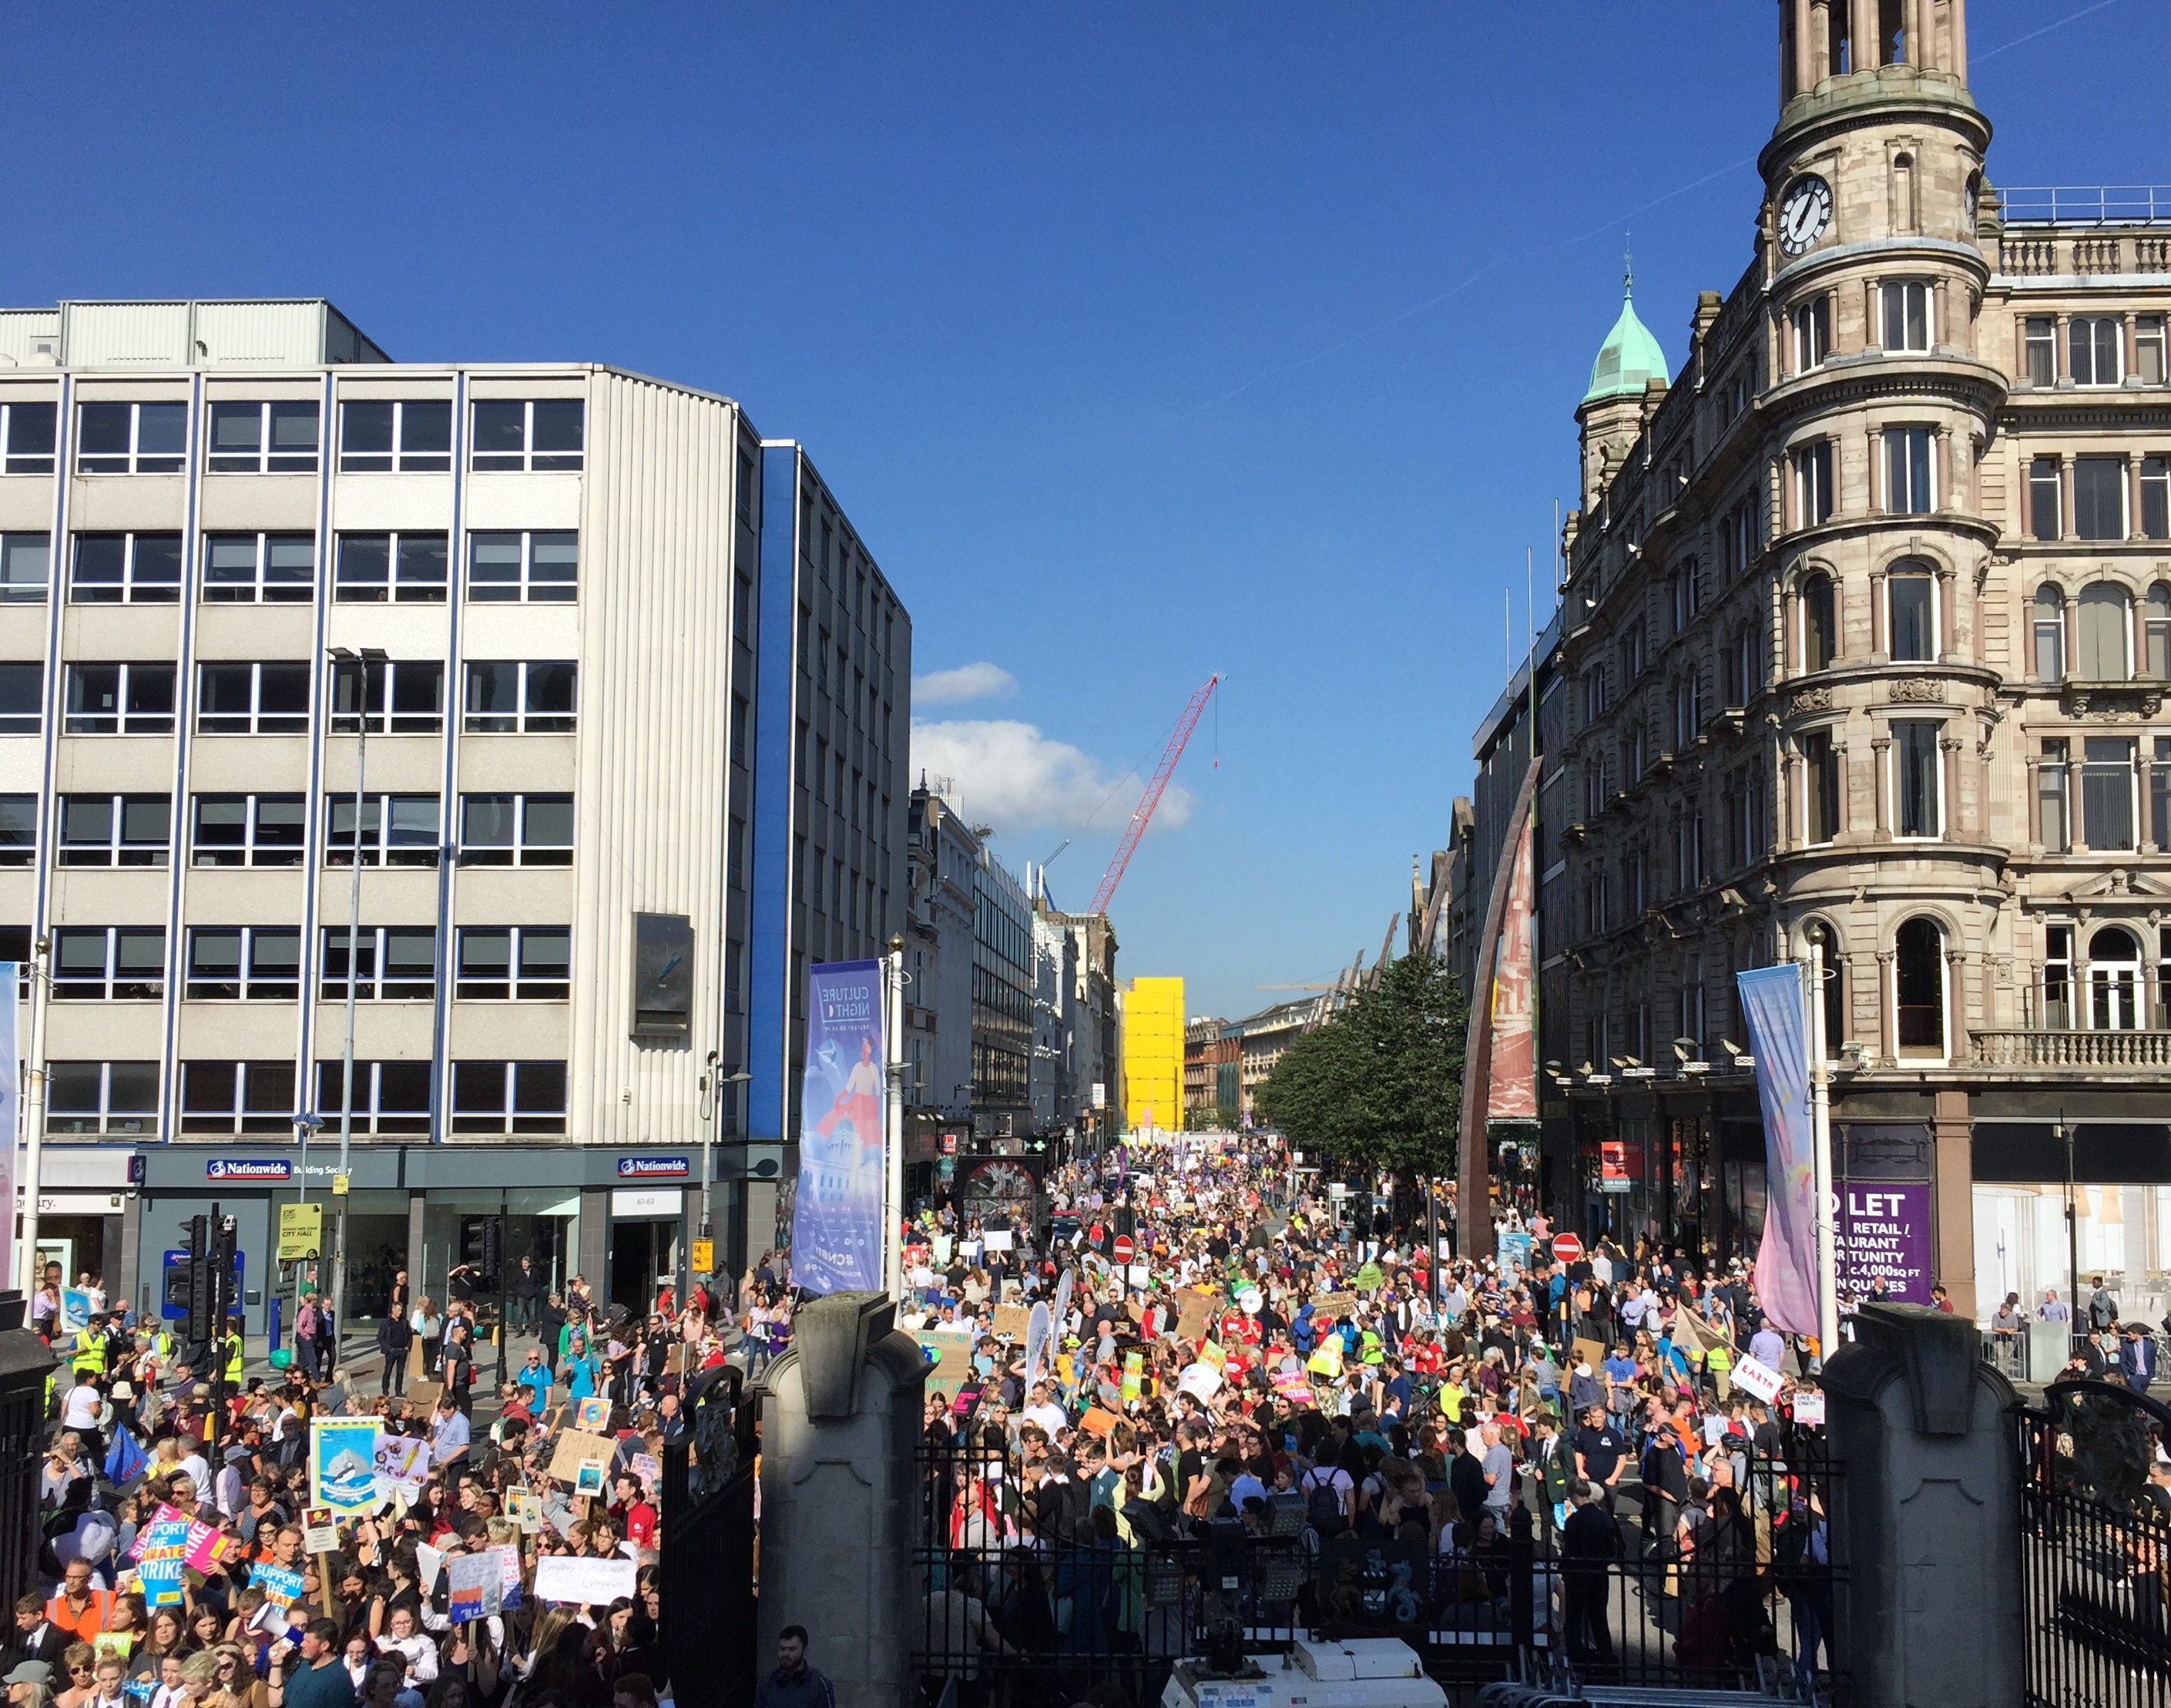 Huge crowds descended on City Hall in Belfast for the Climate Strike rally